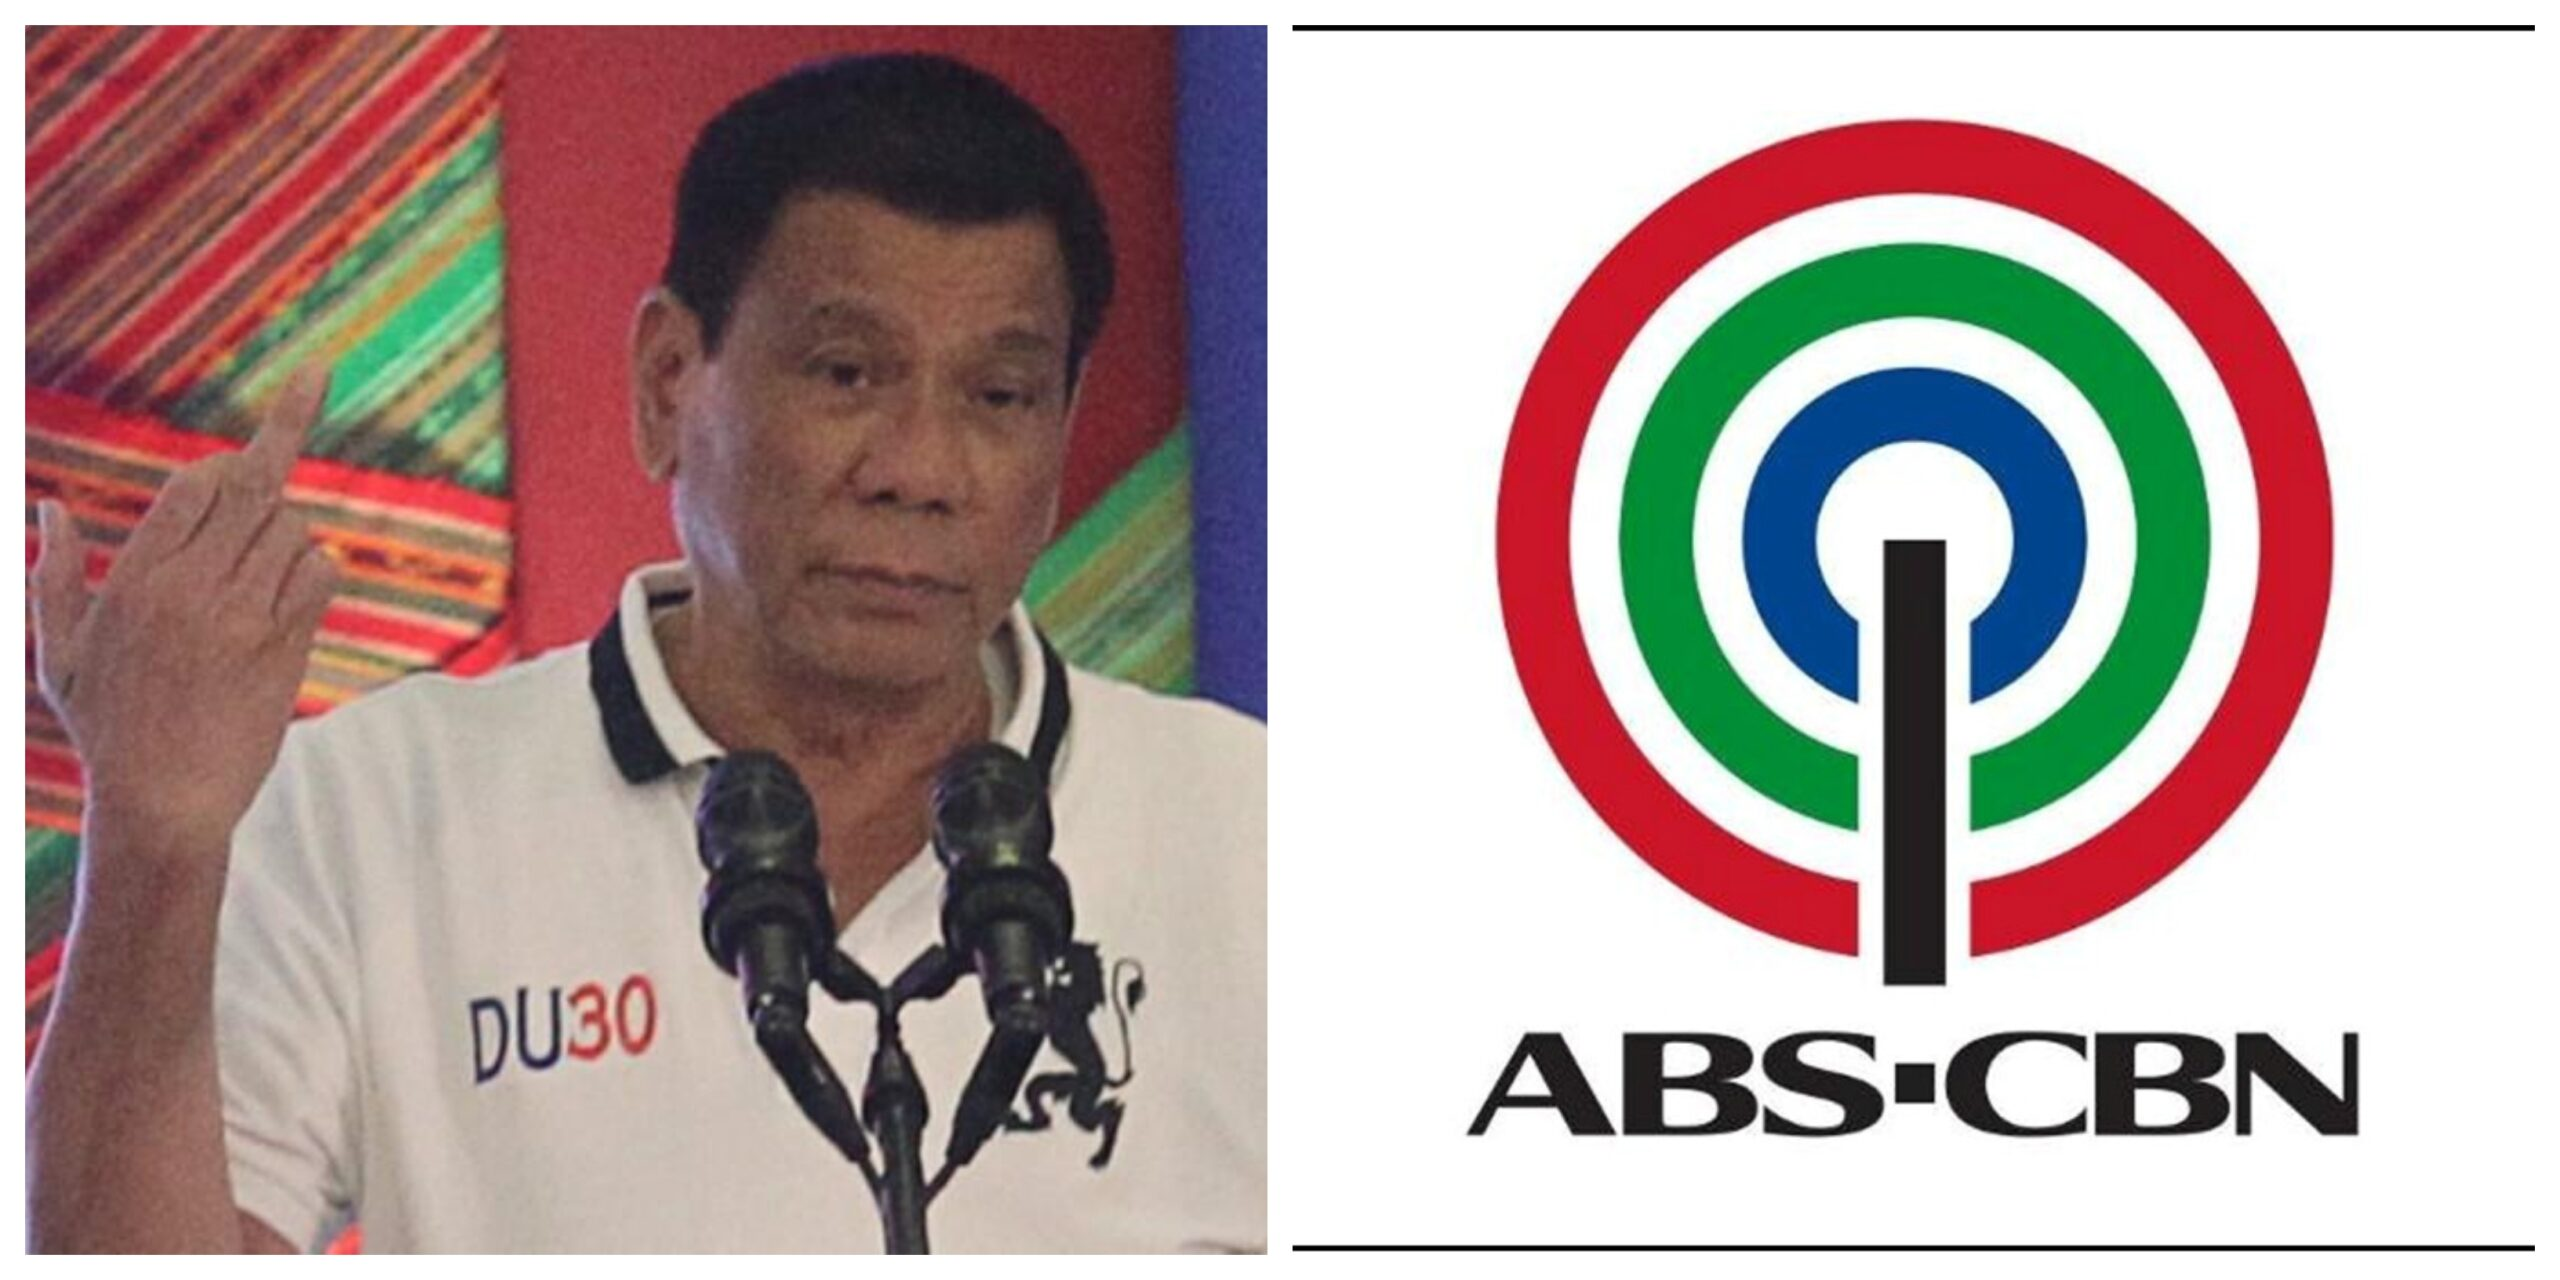 Rodrigo Duterte ABS-CBN collage